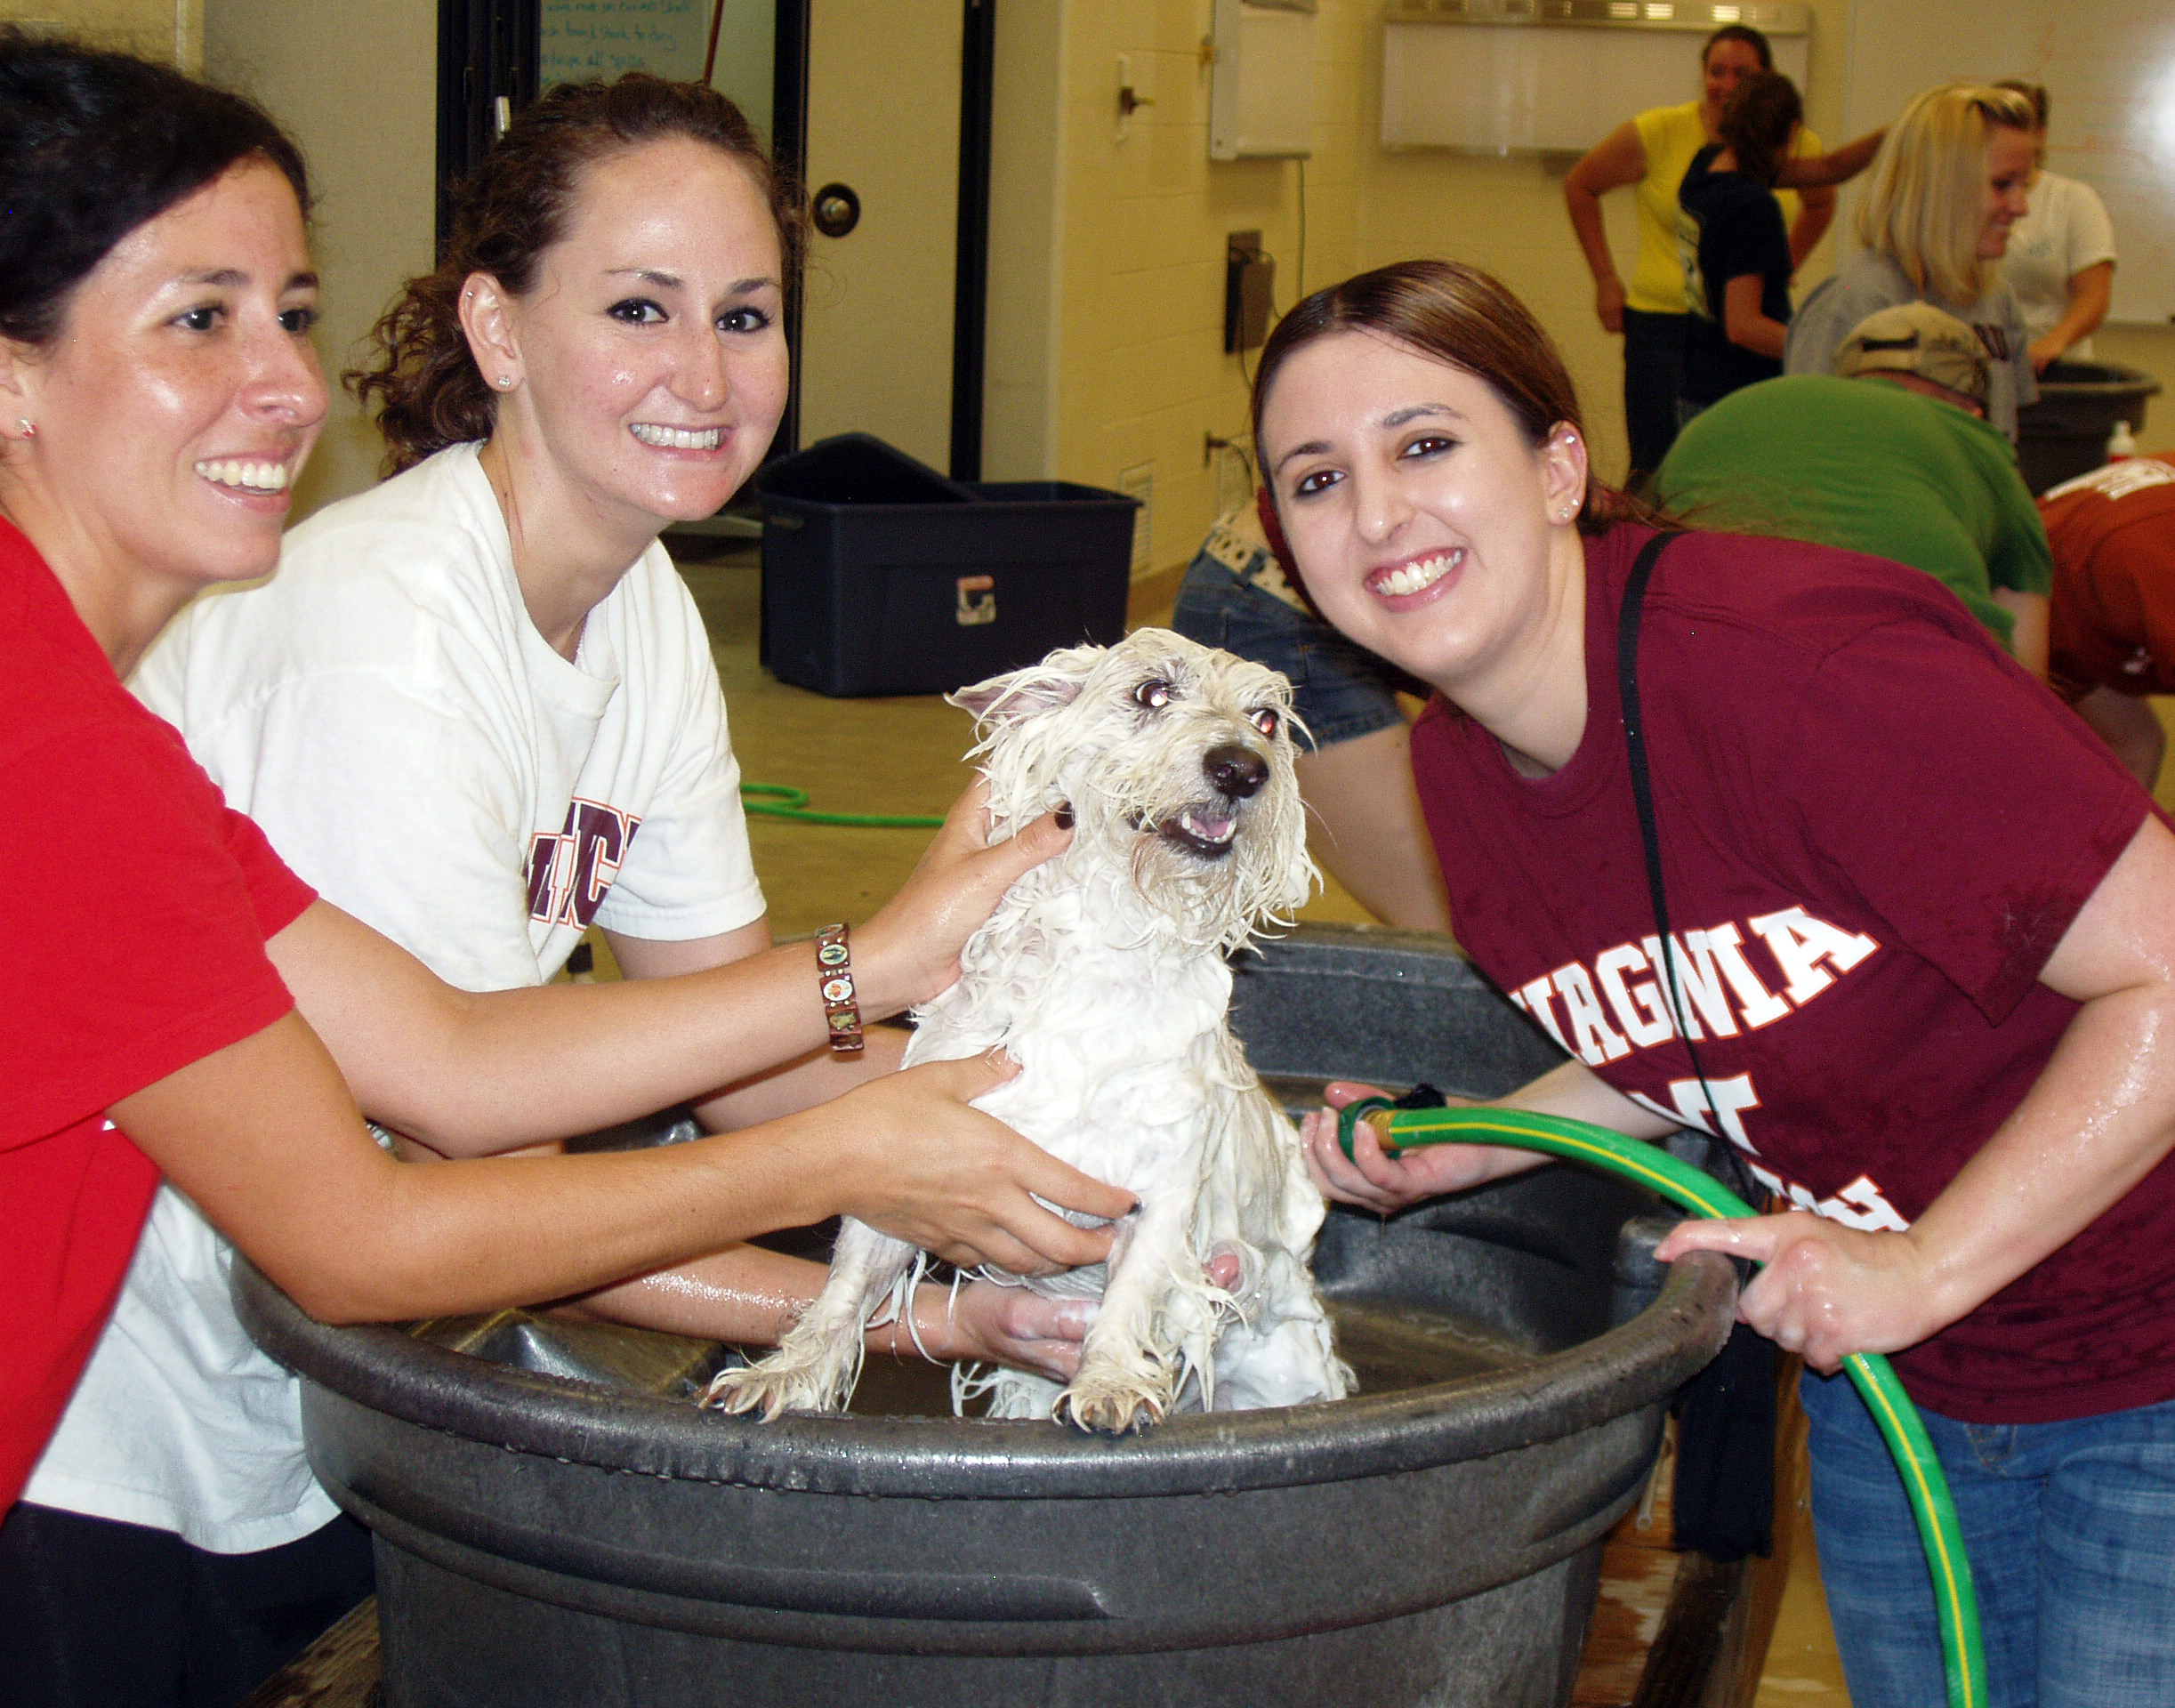 Veterinary students wash dog at community dog wash event.